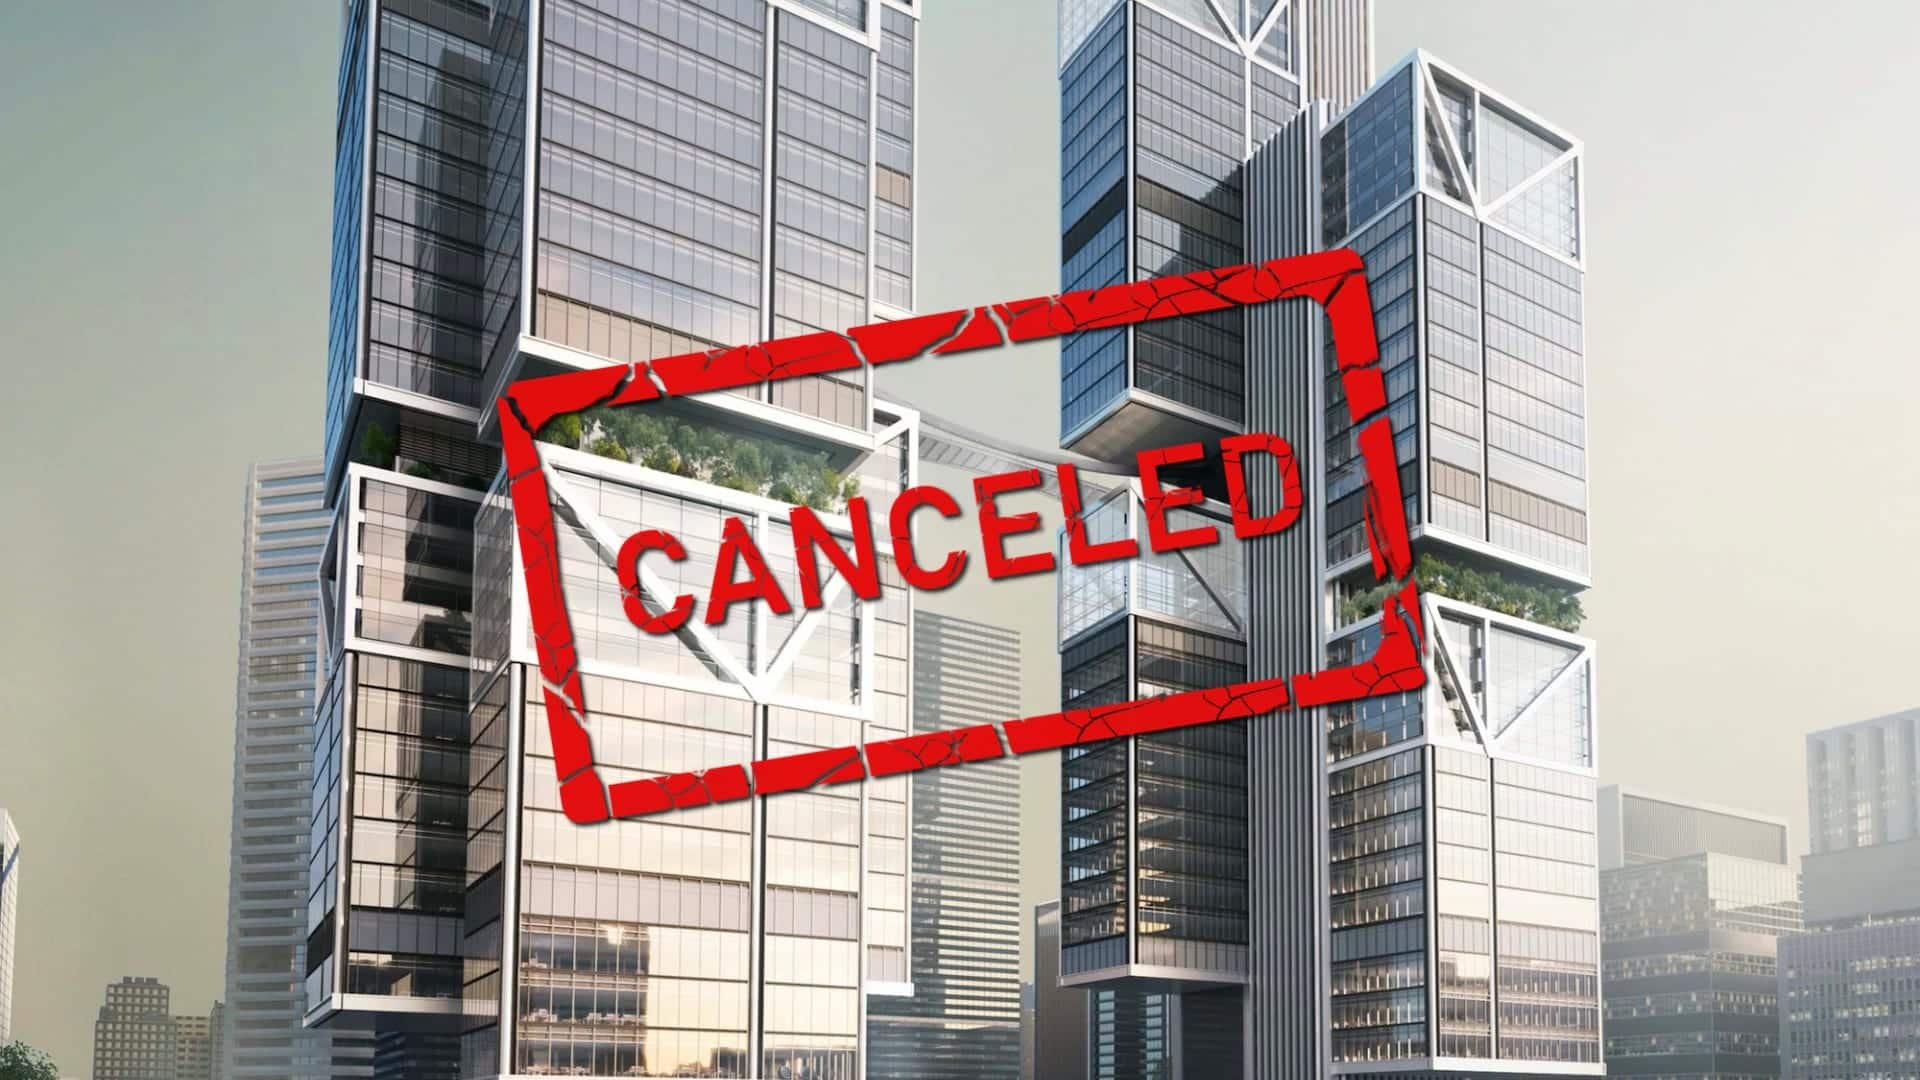 DJI cancels plans for new sky bridge head offices in Shenzhen, China